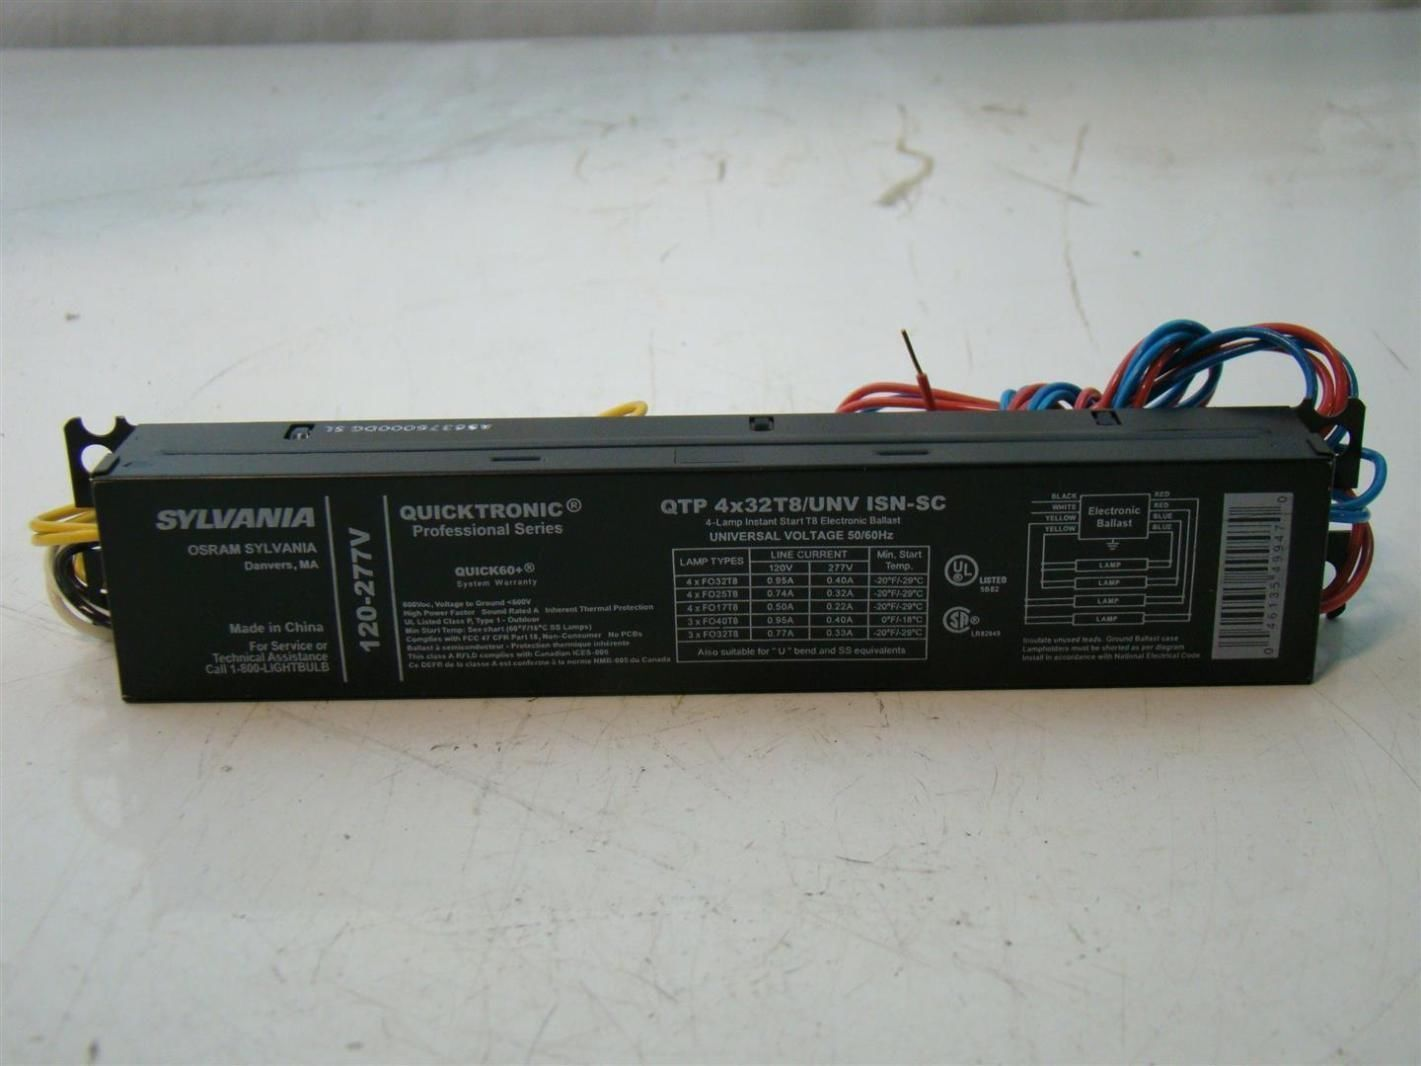 Sylvania Quicktronic Ballast Wiring Diagram High 4 Lamp Electronic Funky Image Collection Electrical Professional Series